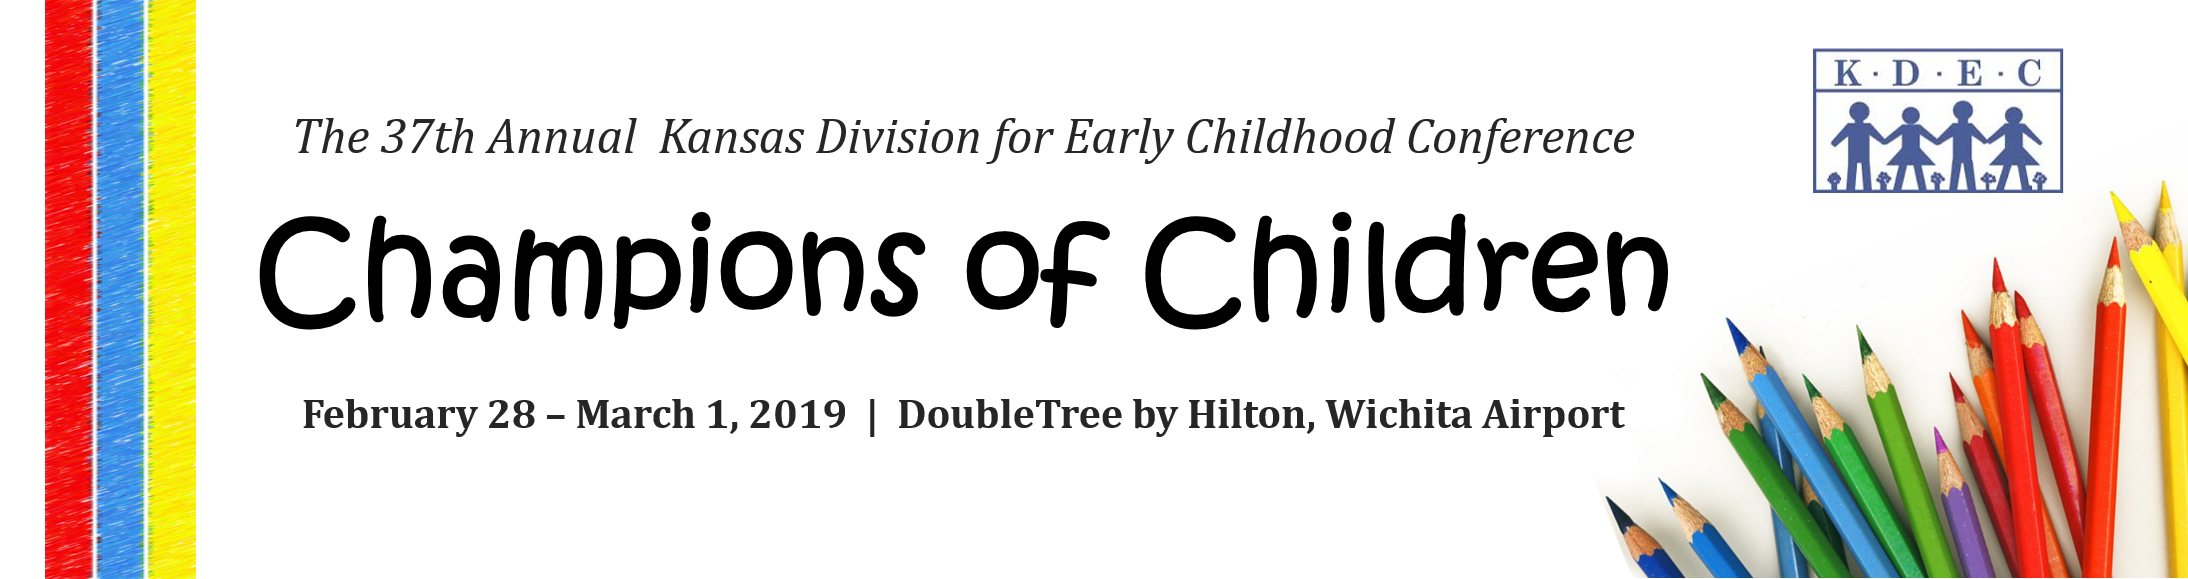 The 37th Annual Kansas Division for Early Childhood Conference